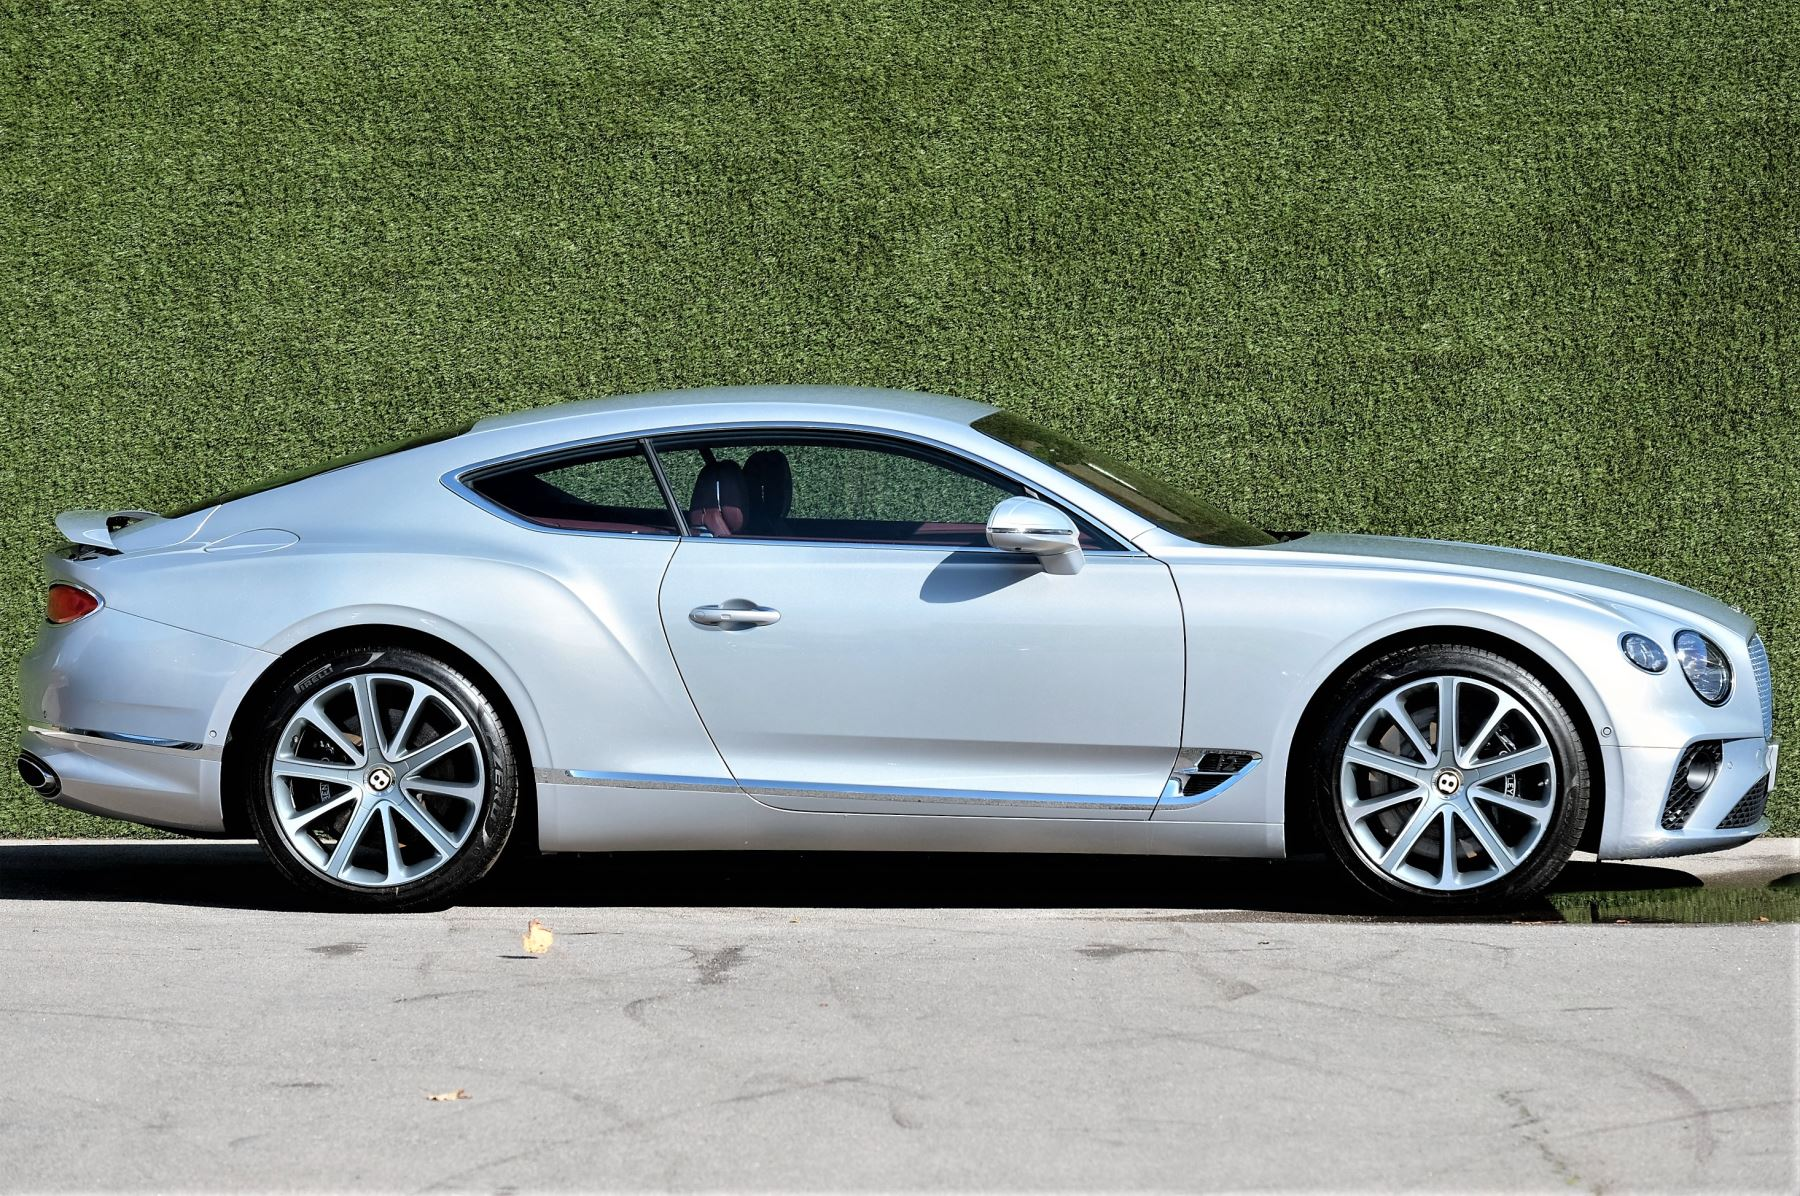 Bentley Continental GT 6.0 W12 Centenary, City and Touring Specification image 3